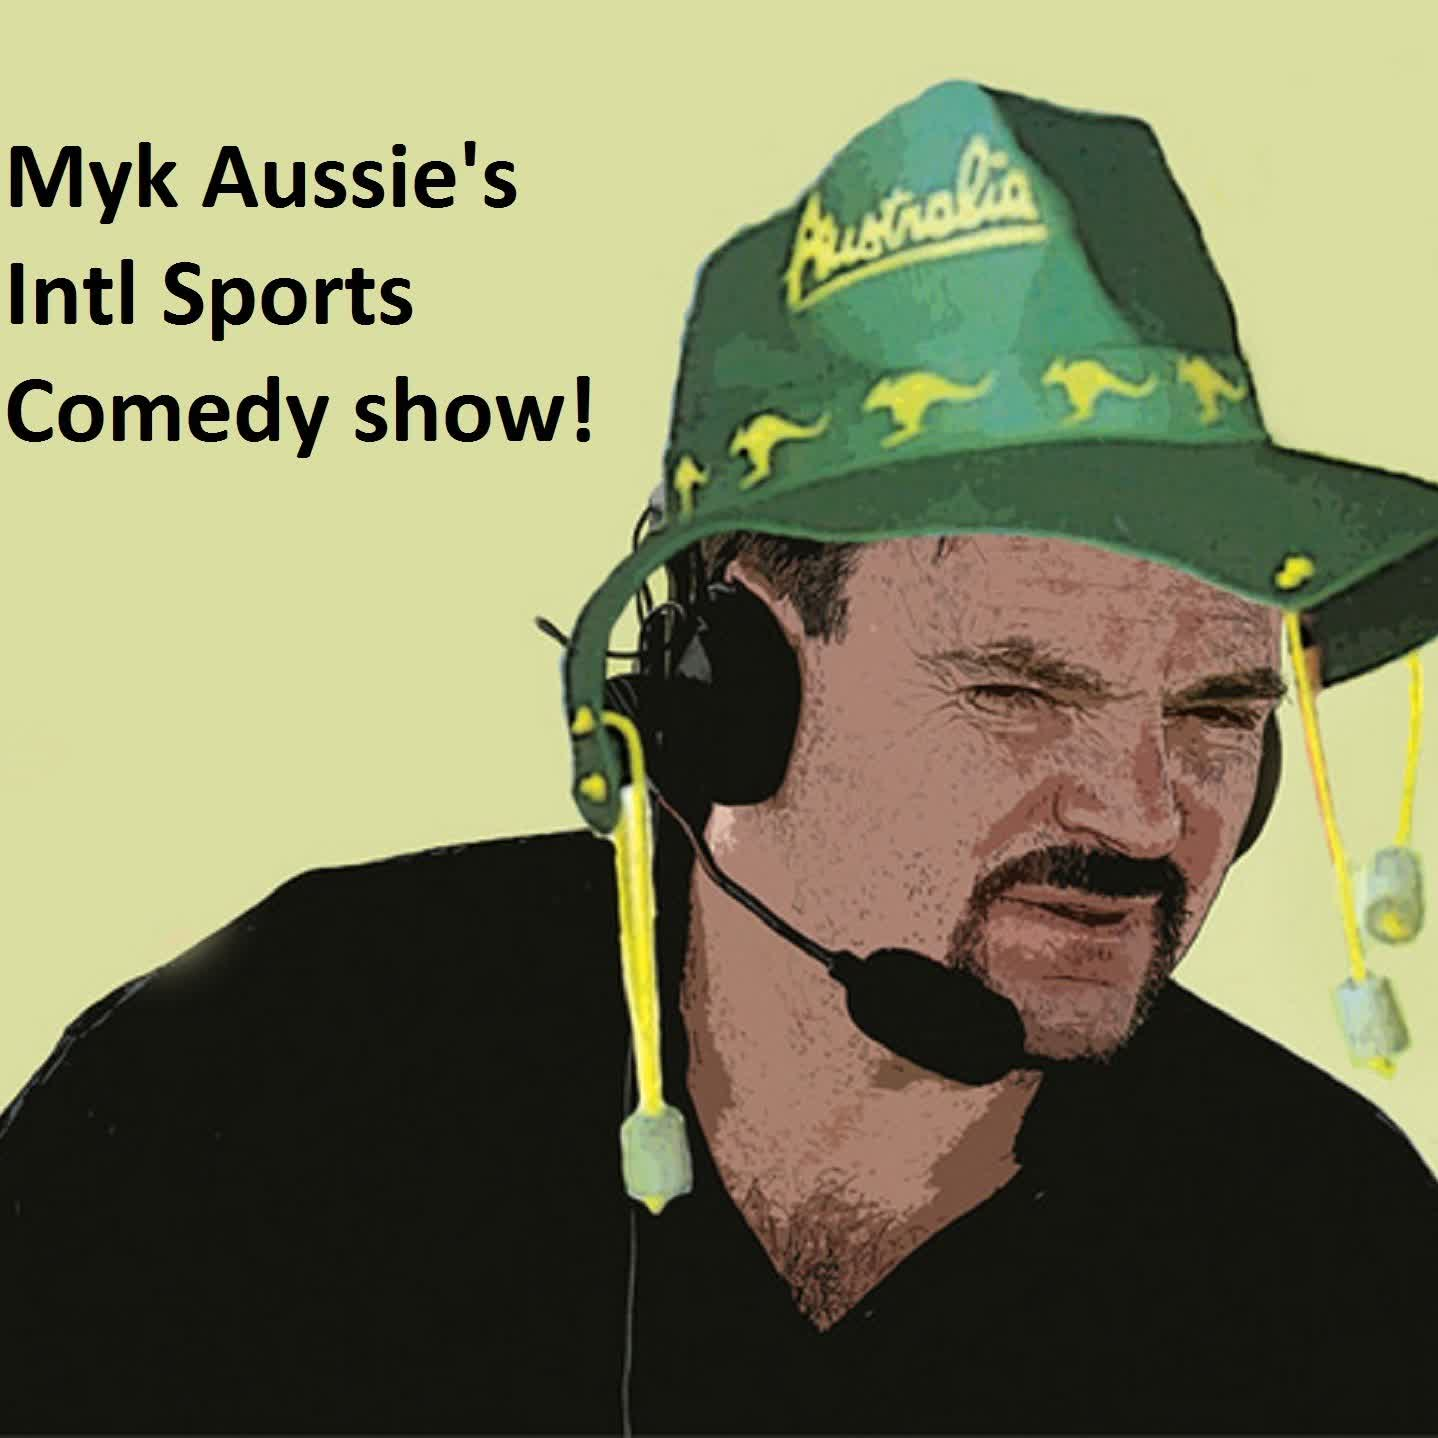 Myk Aussie Intl Sports Comedy show, Super Bowl stories, more - Episode 4